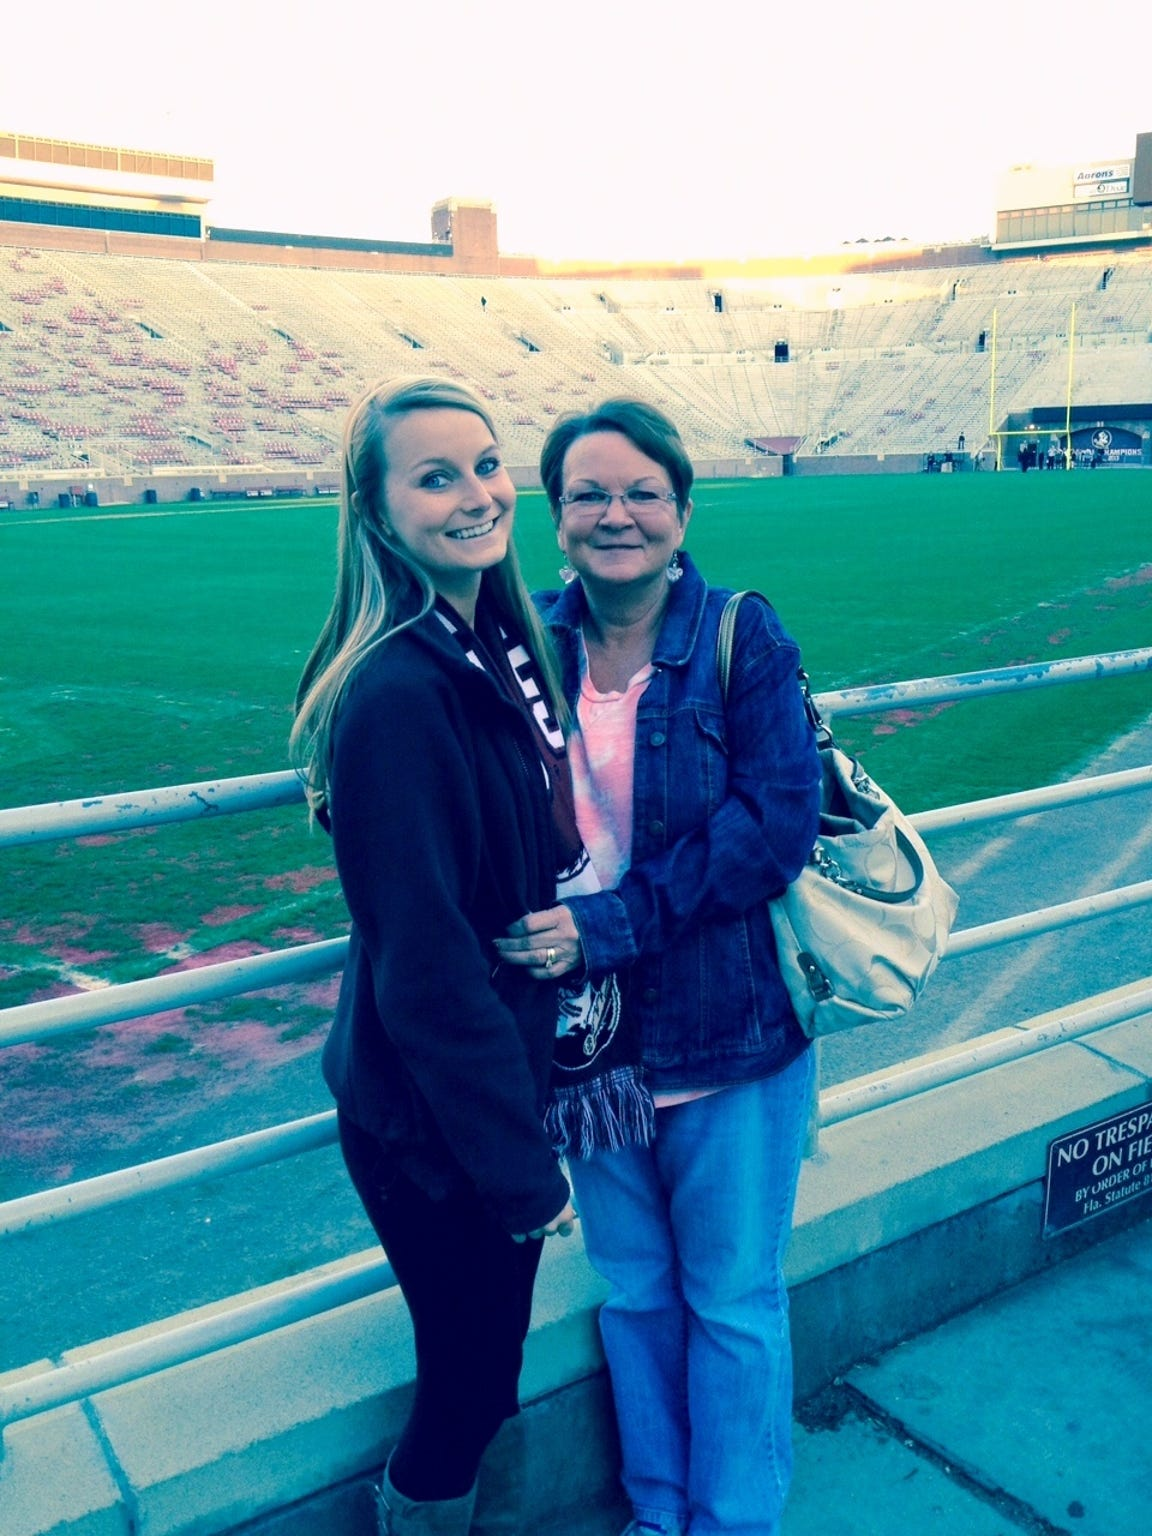 My mom and I at her first time in Doak.